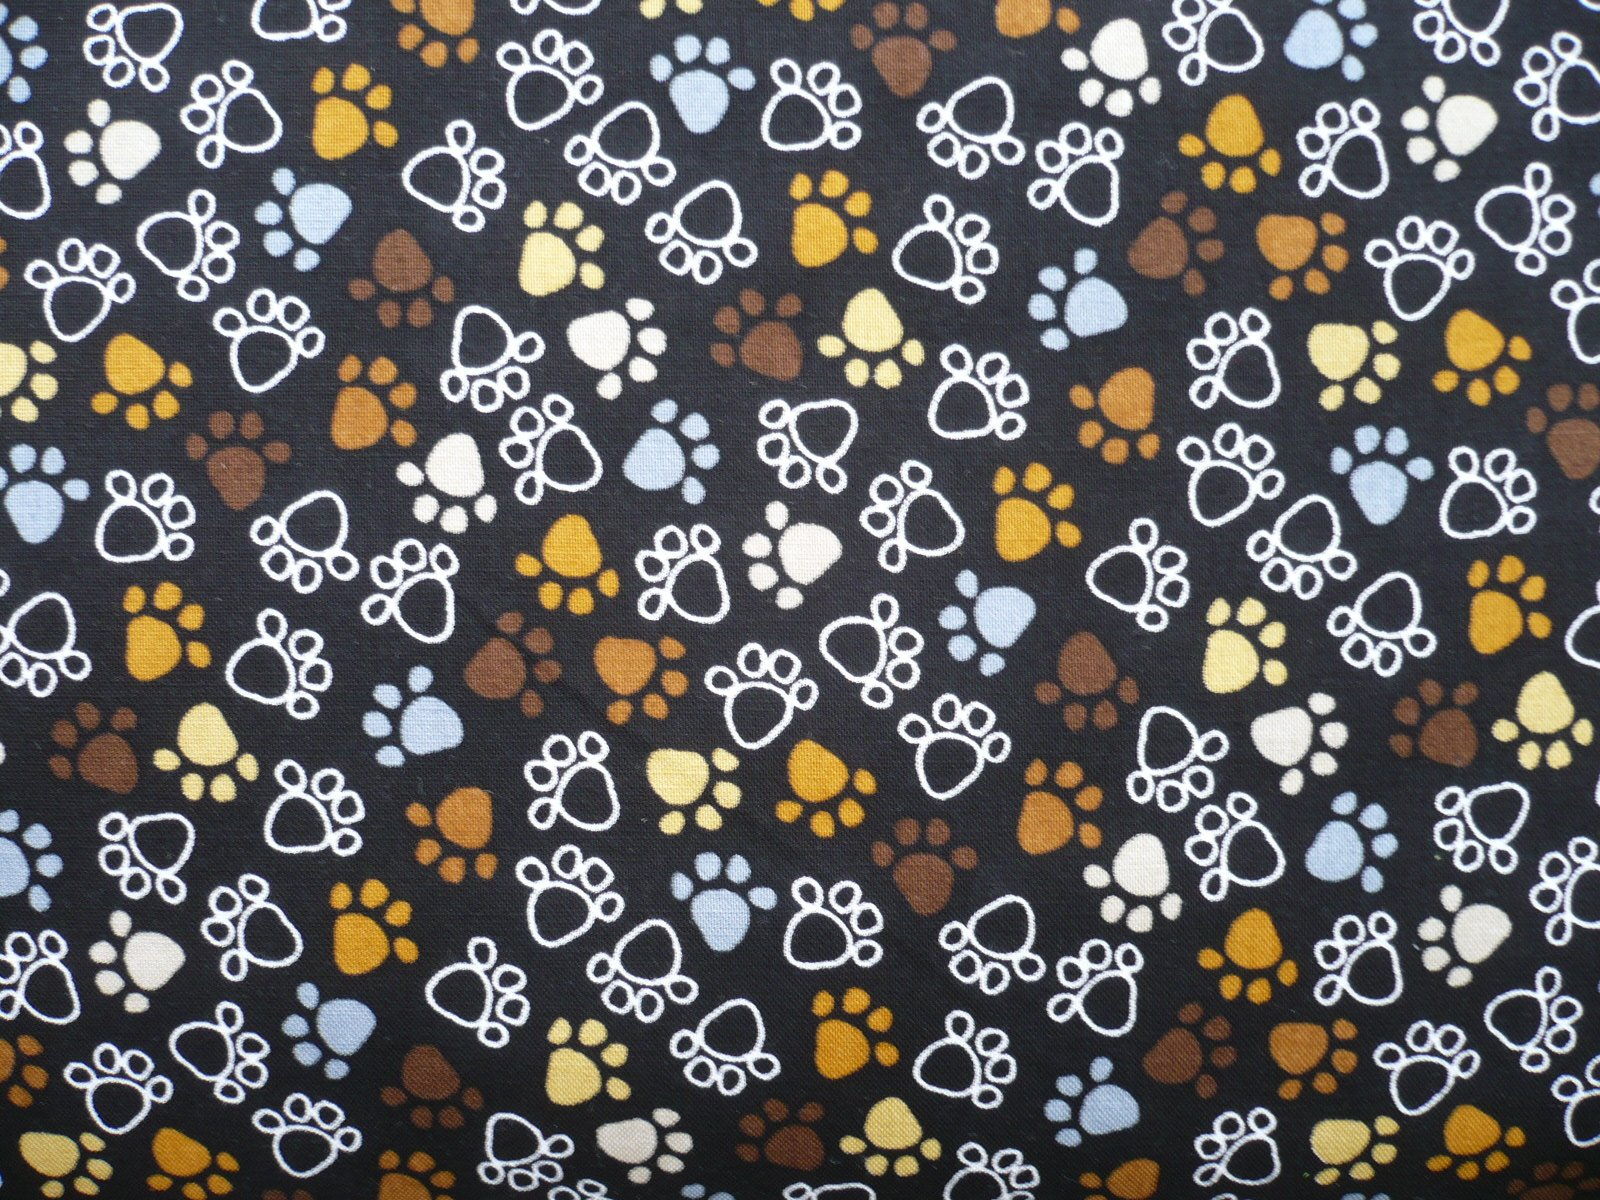 Dog Bone Wallpaper - WallpaperSafari